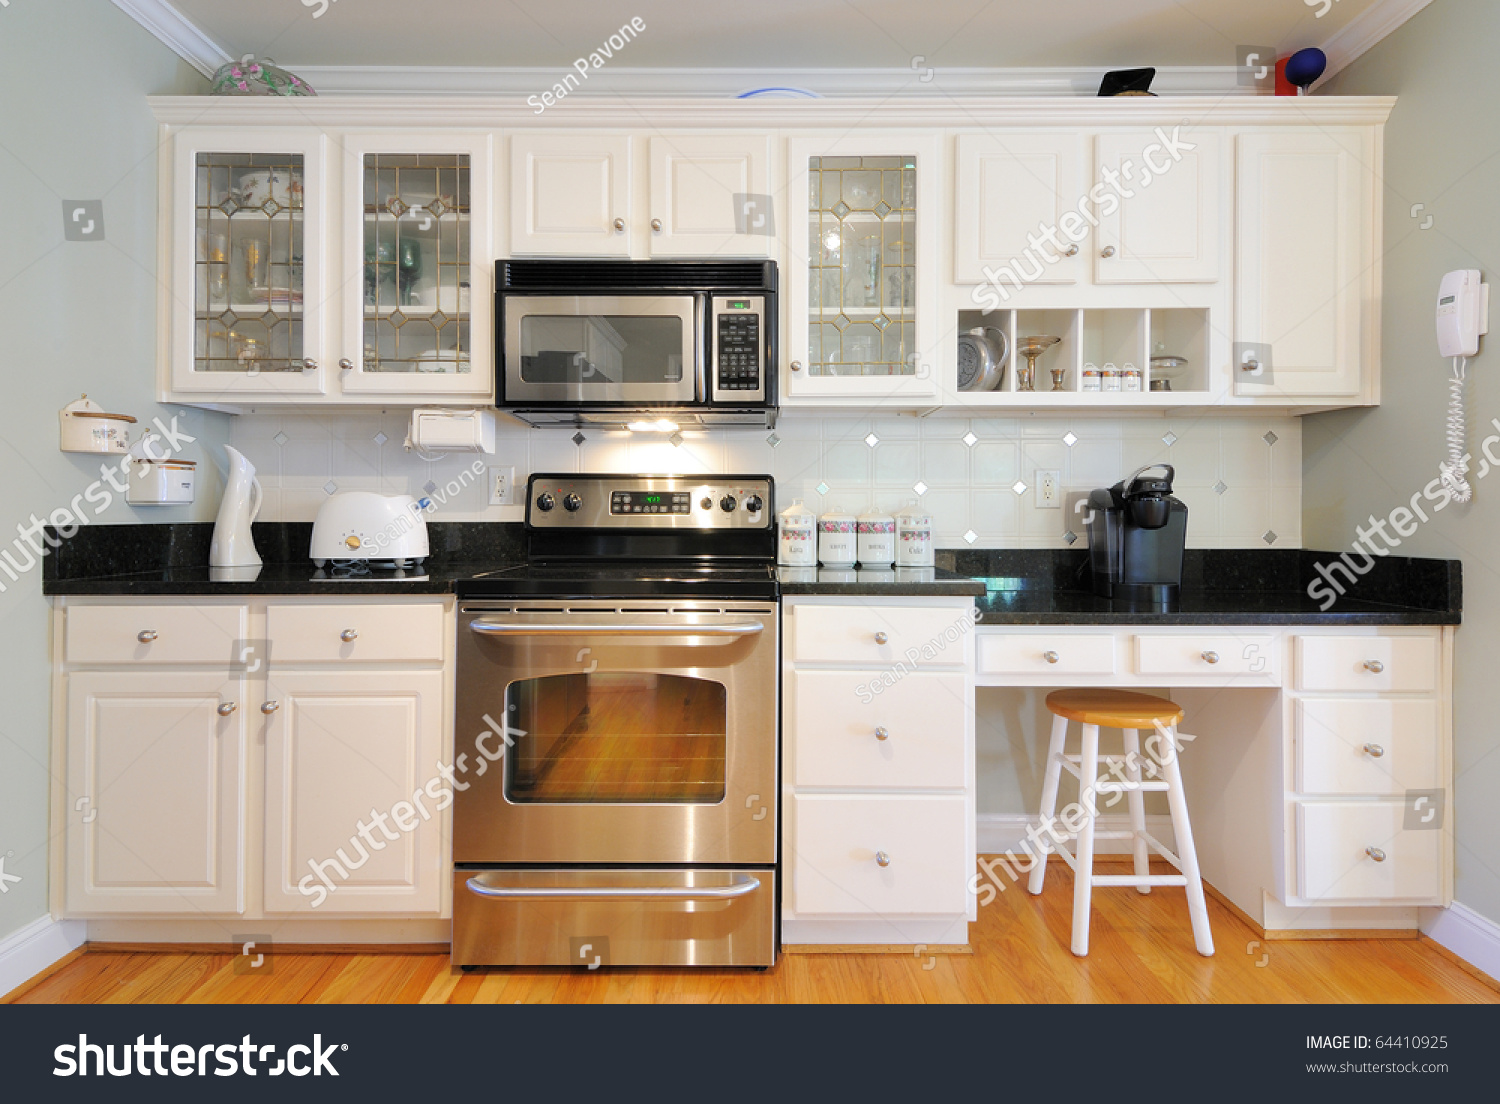 stock photo kitchen cabinets n a modern home living room 64410925